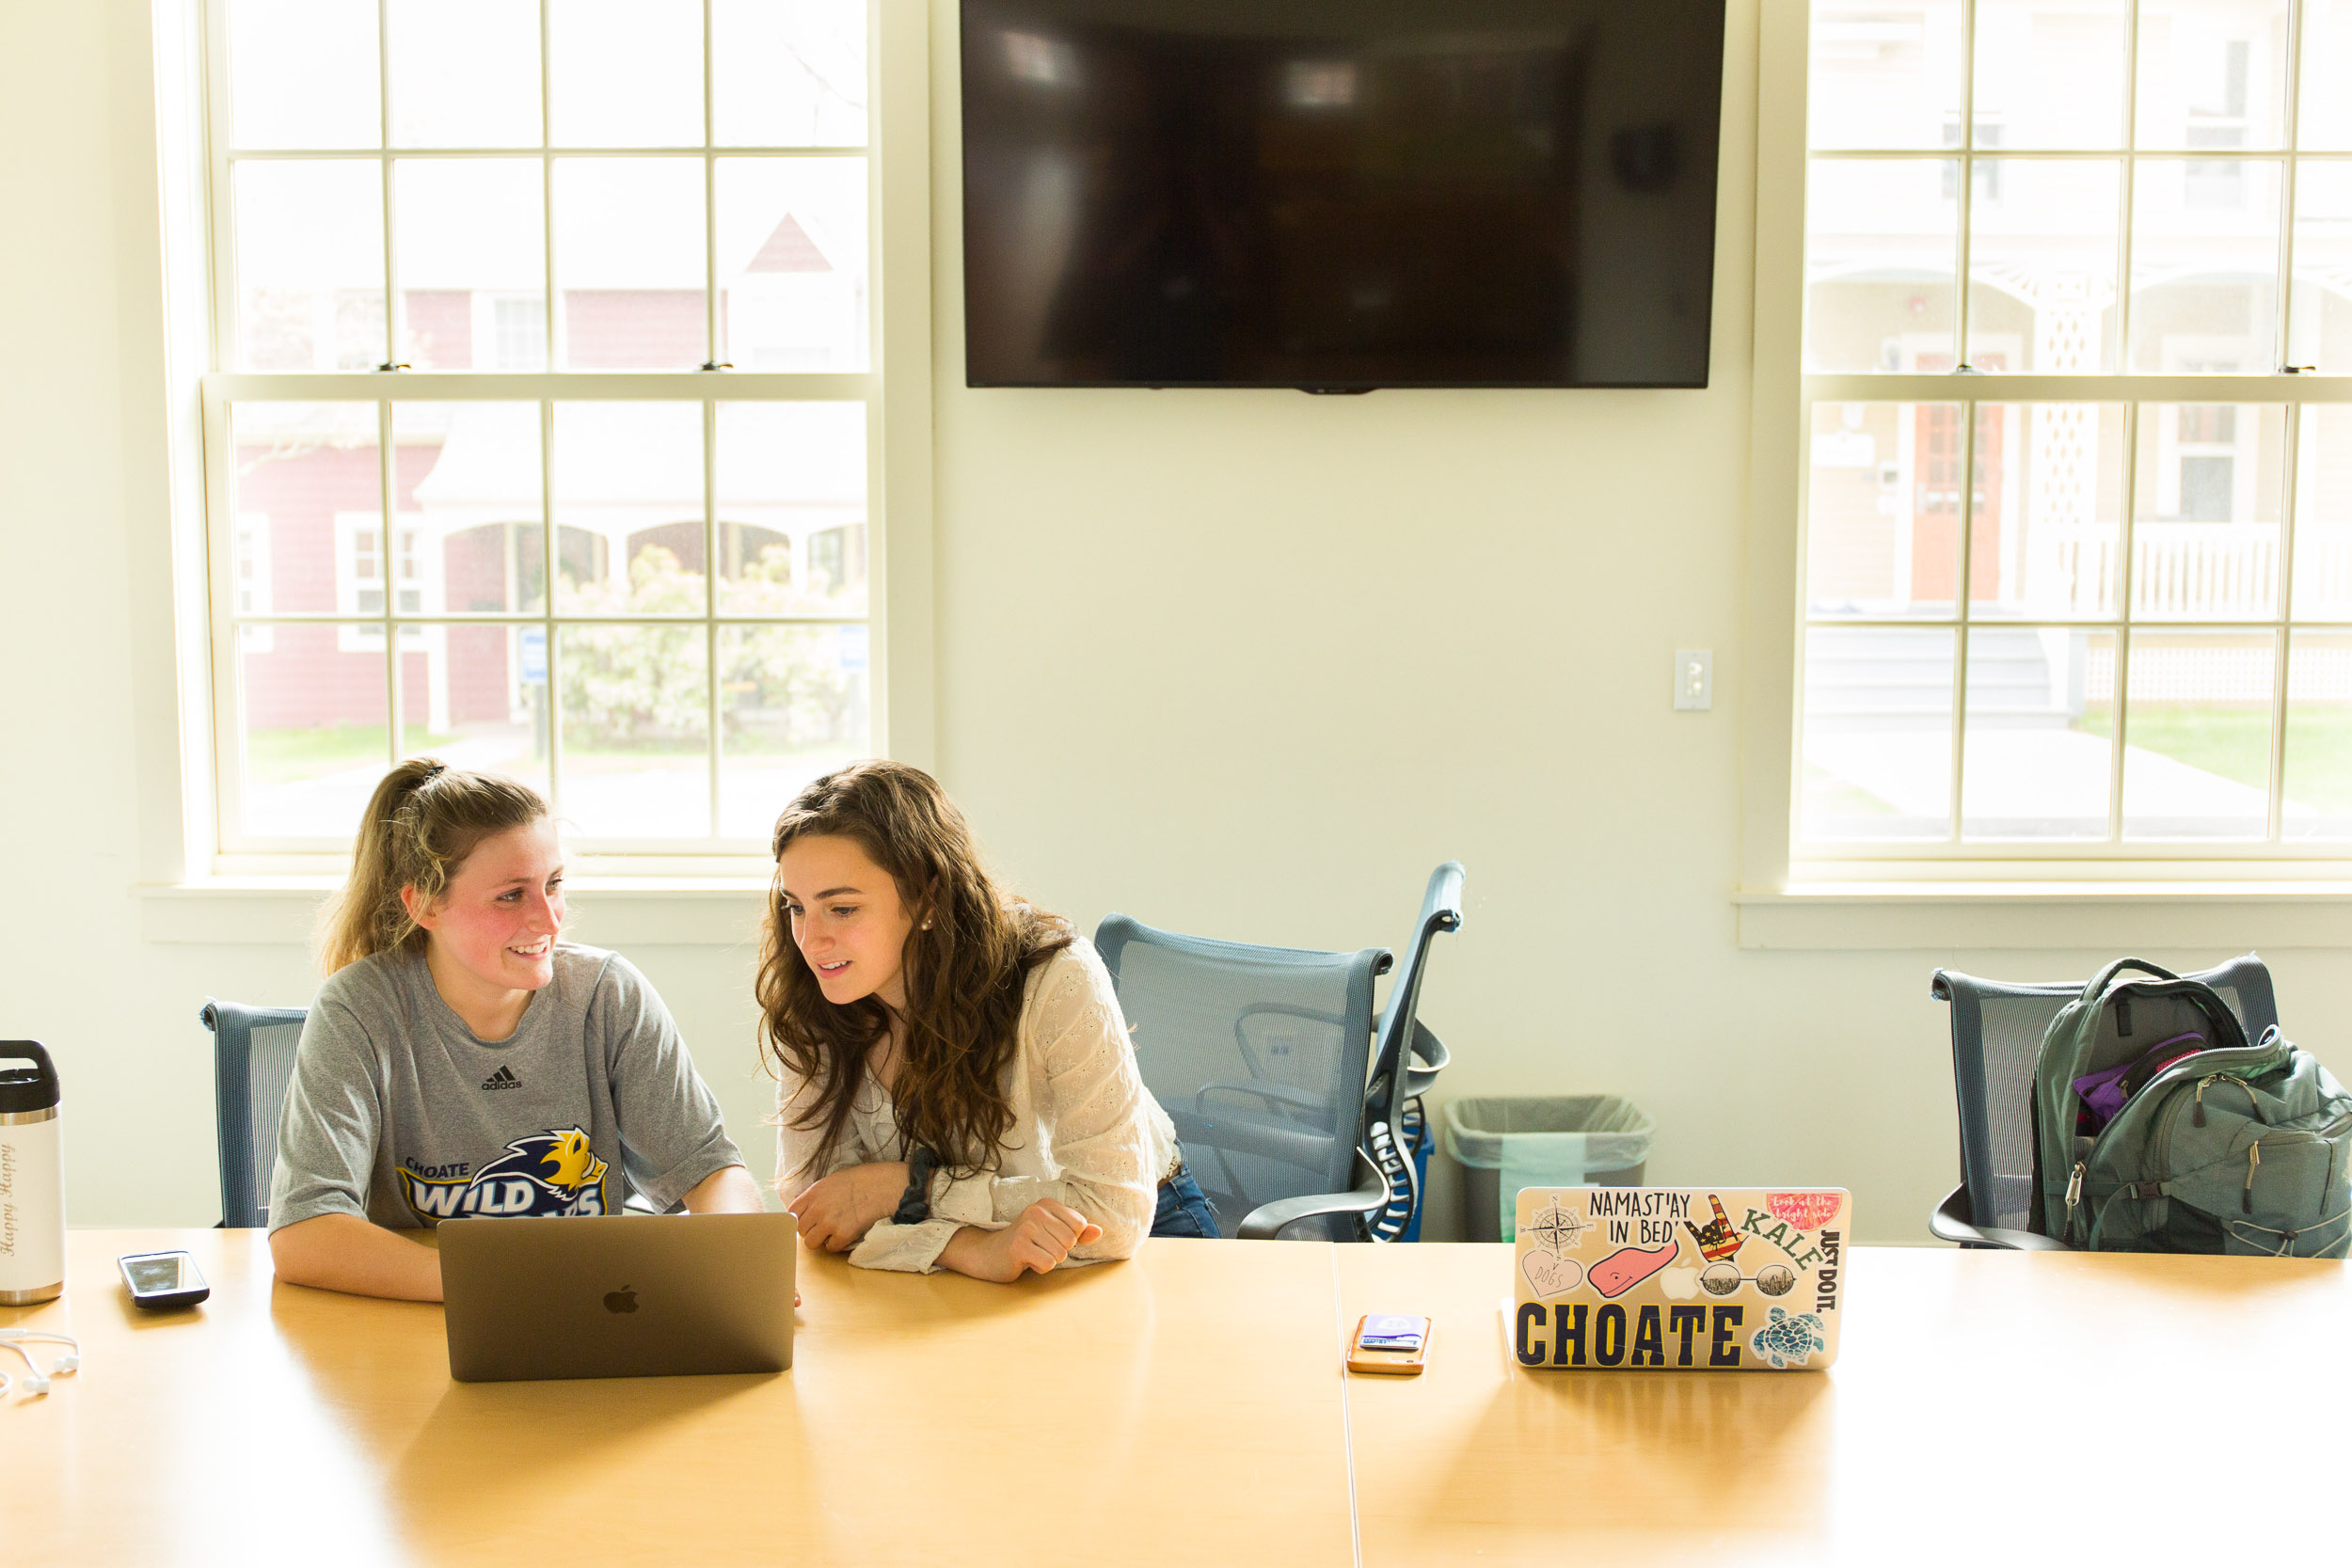 Choate Rosemary Hall girls computers Michael Branscom Photography.